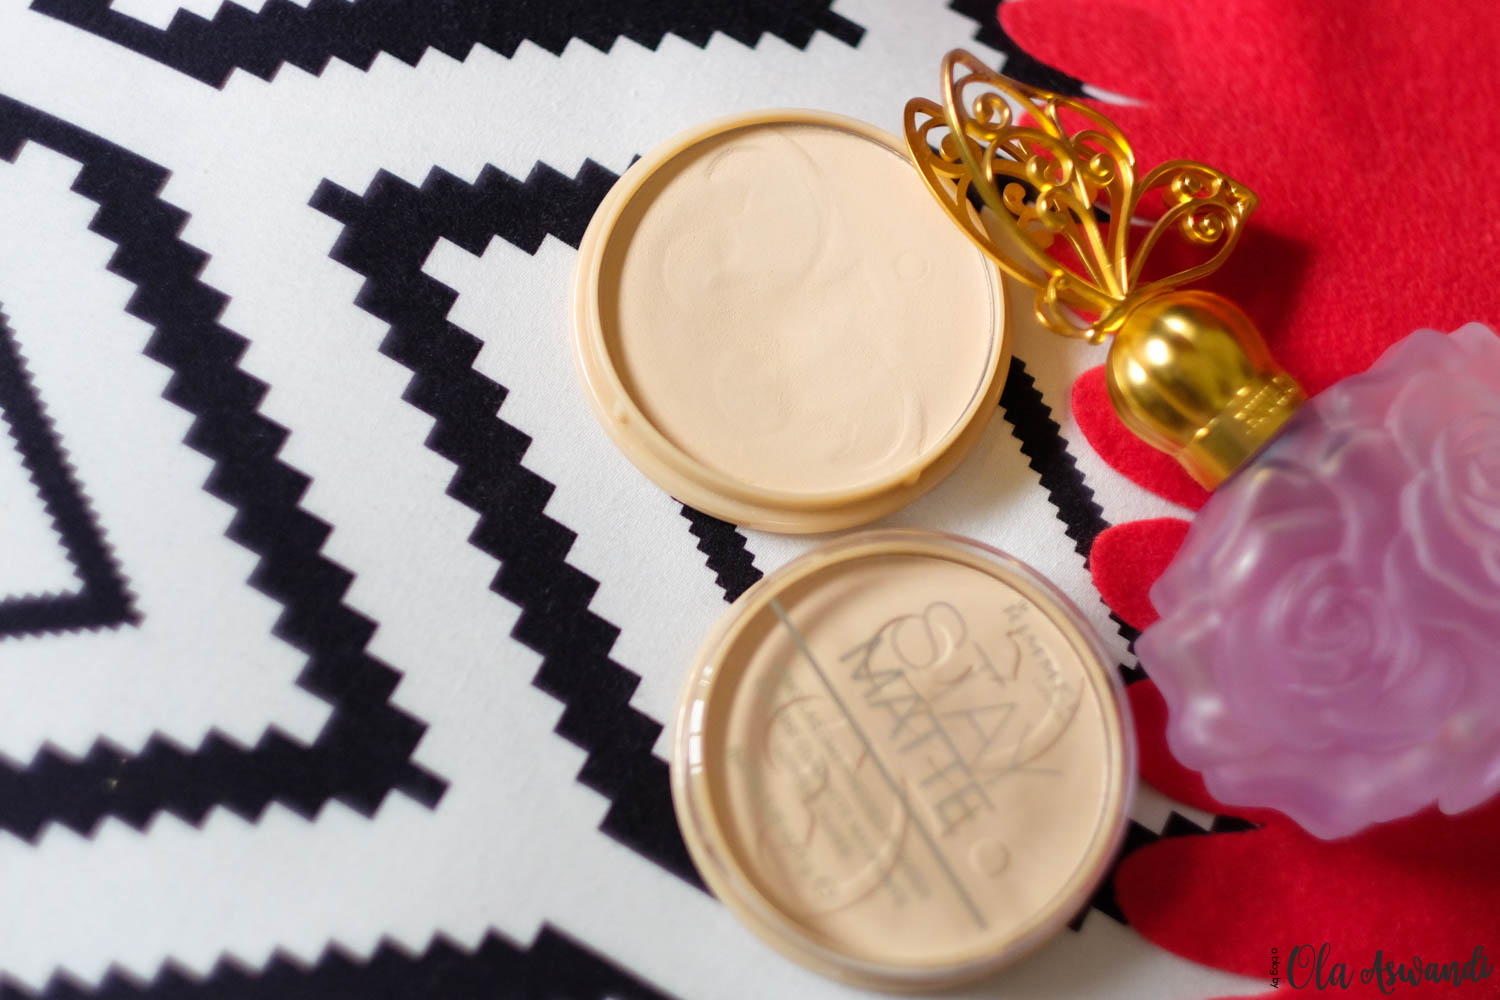 Rimmel-Lightroom-38 Review: Rimmel Stay Matte Pressed Powder